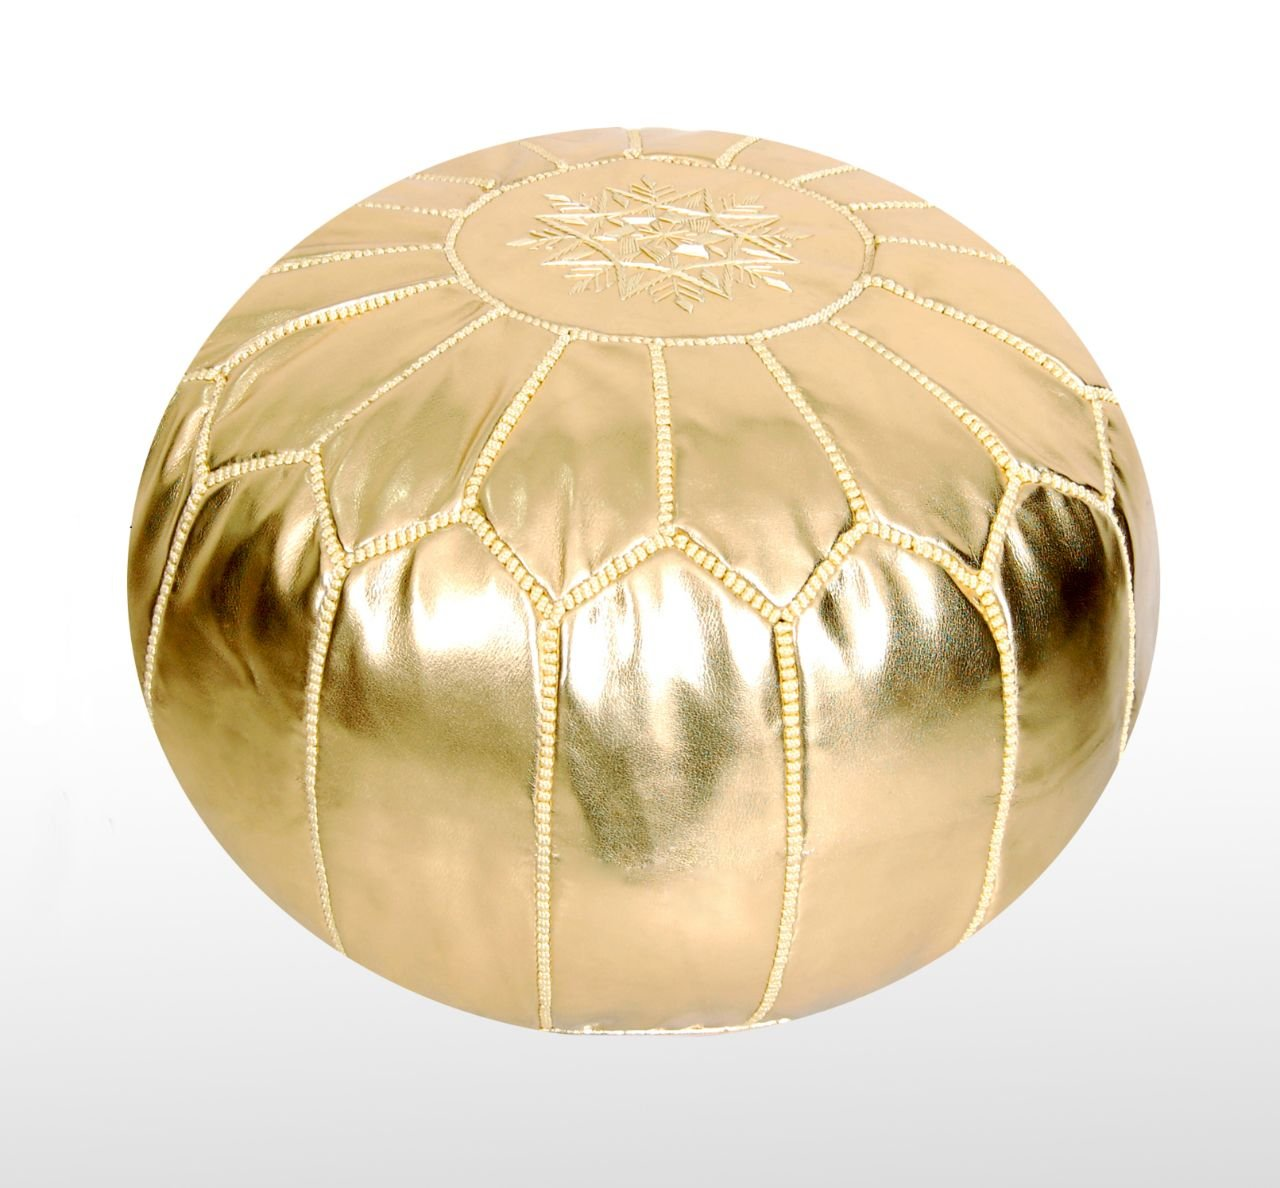 Moroccan Pouf Ottoman Footstool (Faux Leather) Genuine Hand-Stitched Seating | Unstuffed | Living Room, Bedroom, Sitting Area | Gold